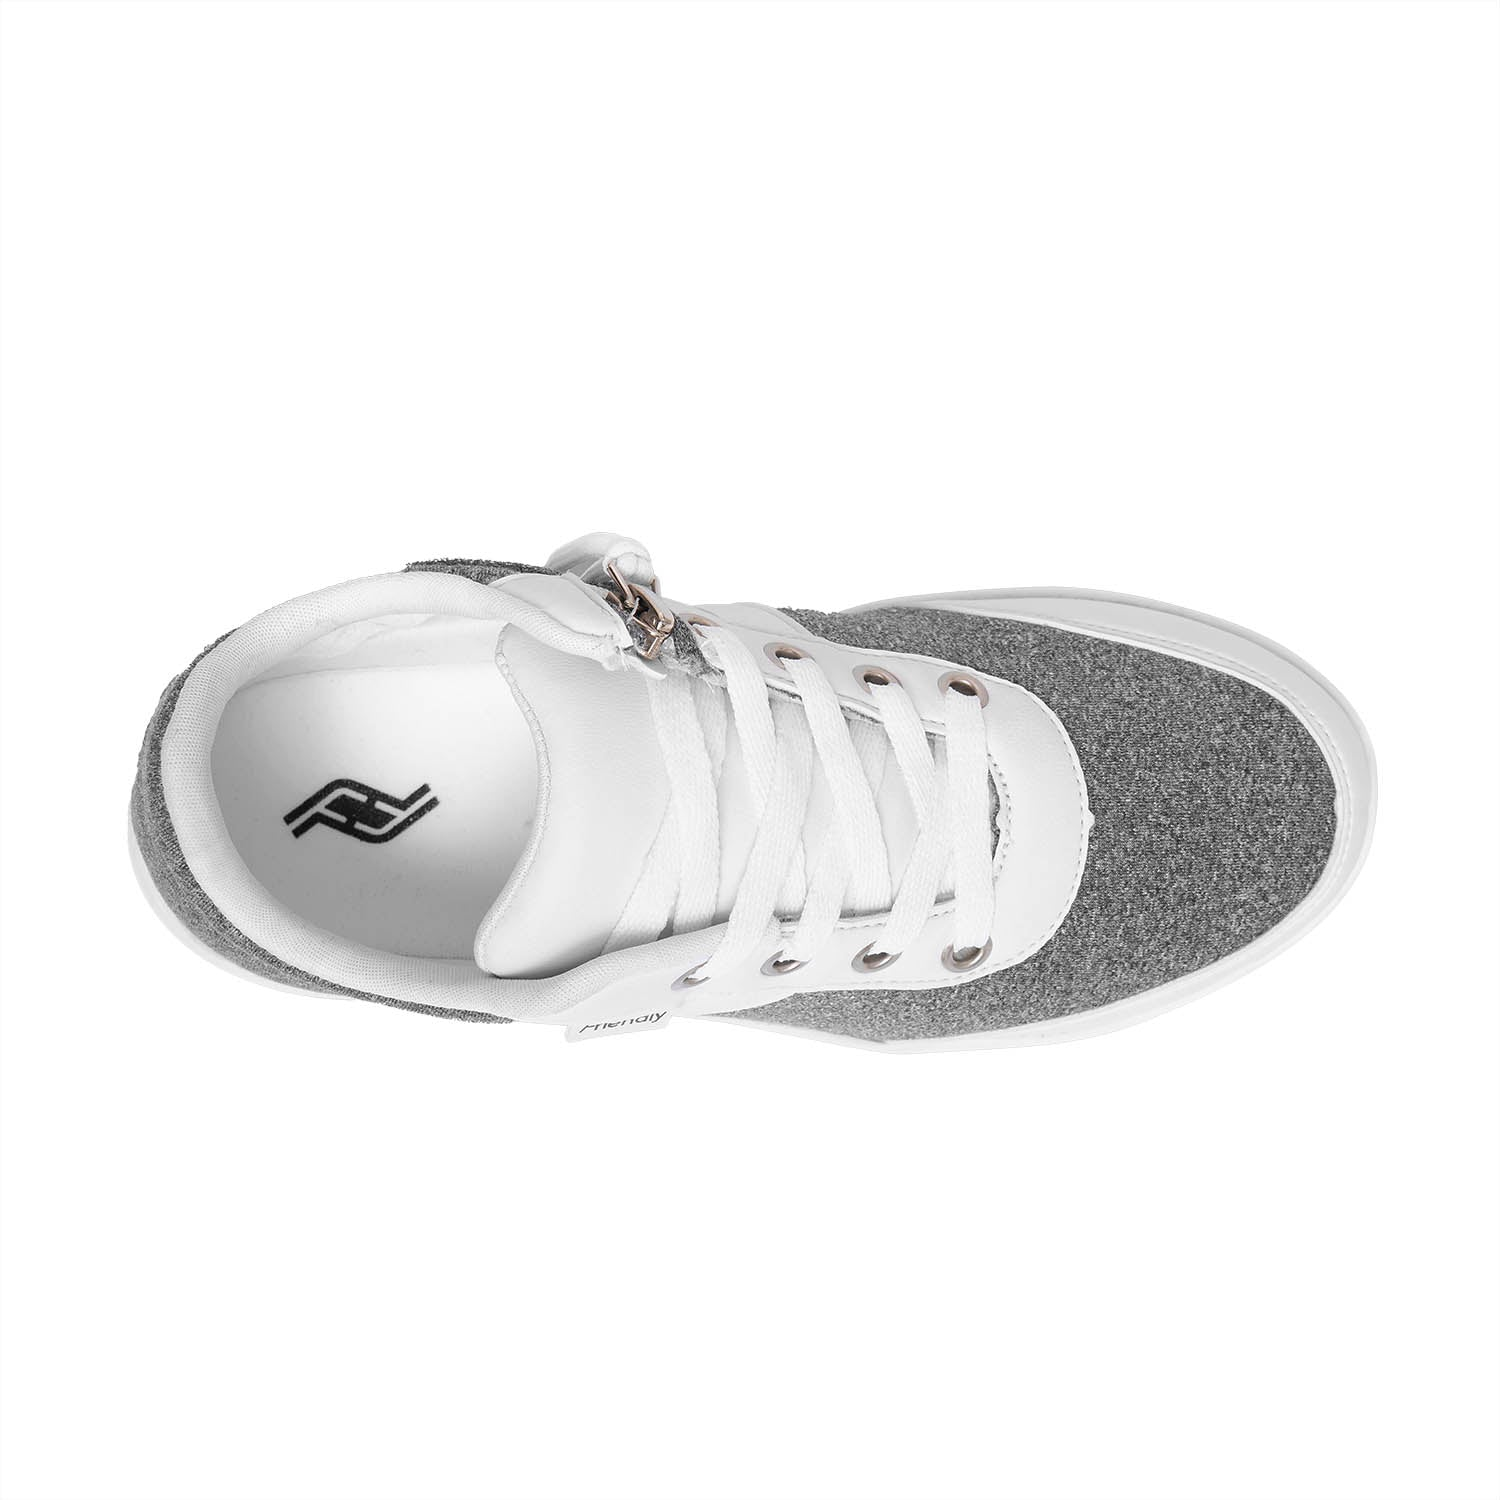 Women's Marlo Knit / Heather Grey & White Shoe